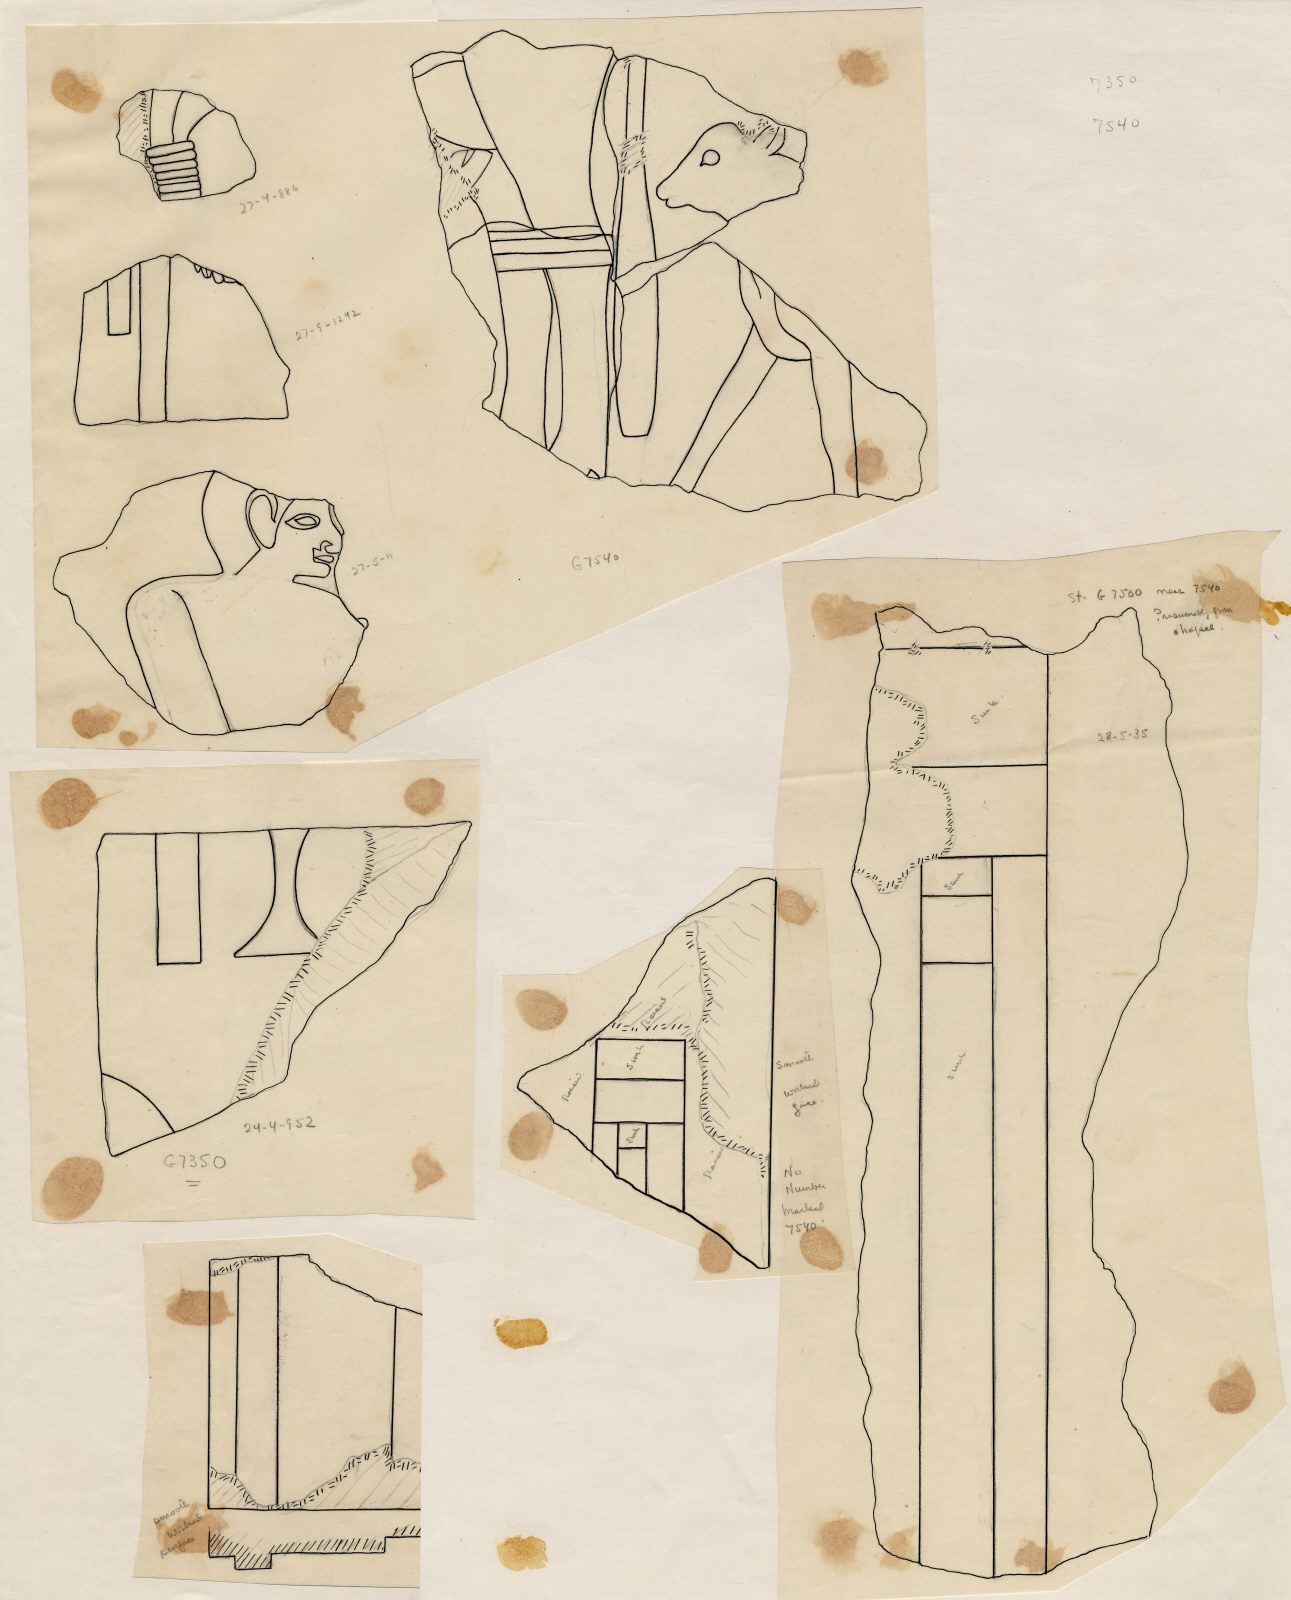 Drawings: Fragments of relief from Street G 7000, G 7530-7540, G 7350